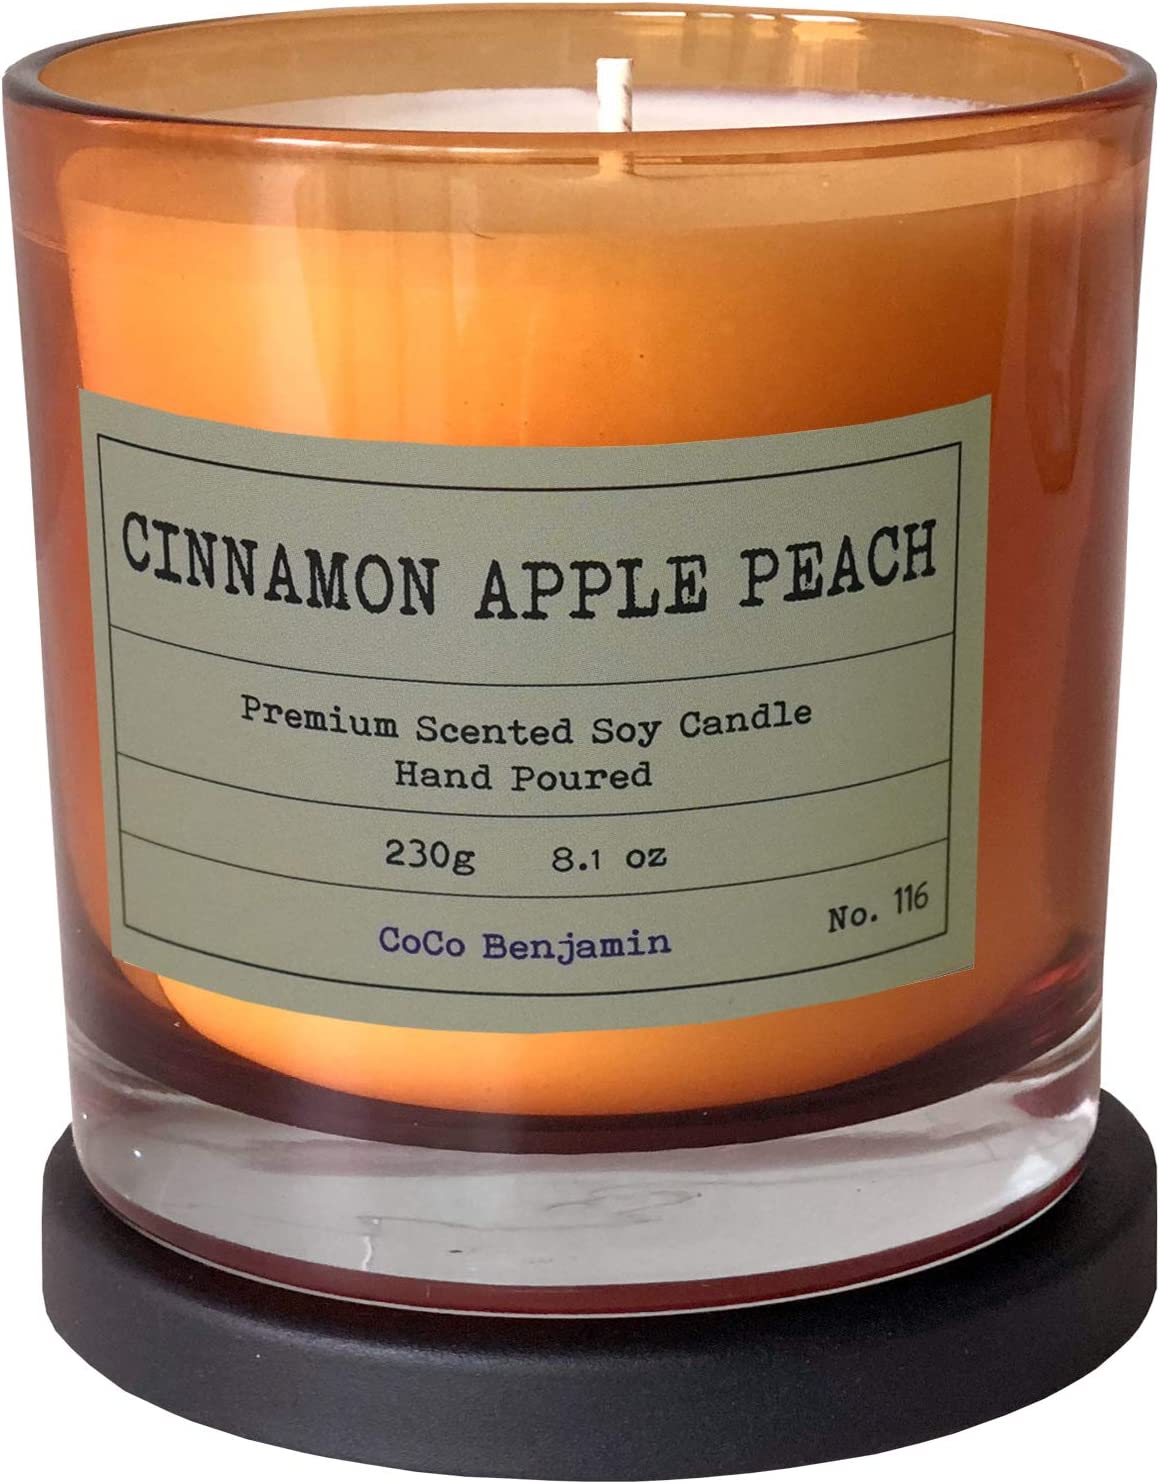 Soy Candle, Highly Scented, Hand Poured, 8.1 oz (Cinnamon Apple Peach)